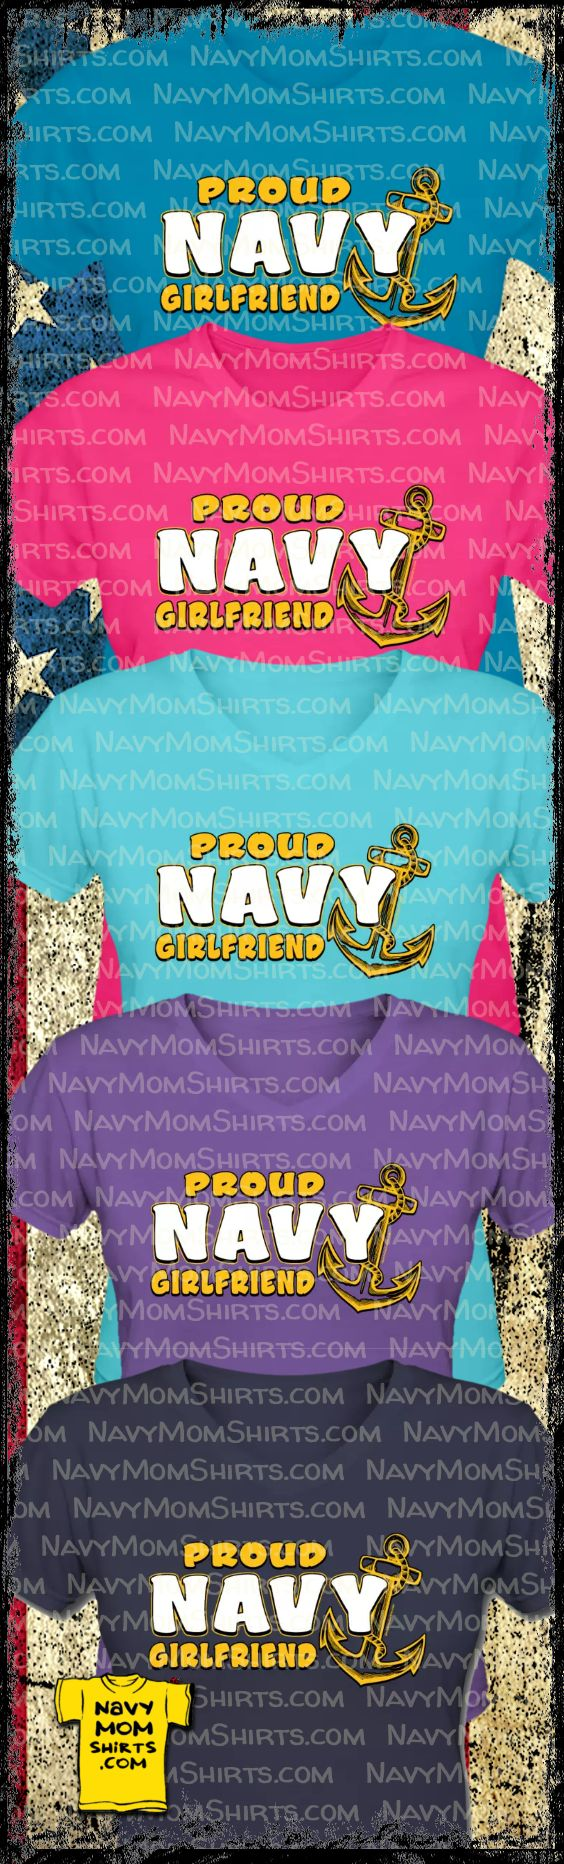 Proud Navy Girlfriend Shirts! Love all the colors! by NavyMomShirts.com  #NavyGirlfriend #NavyShirts -